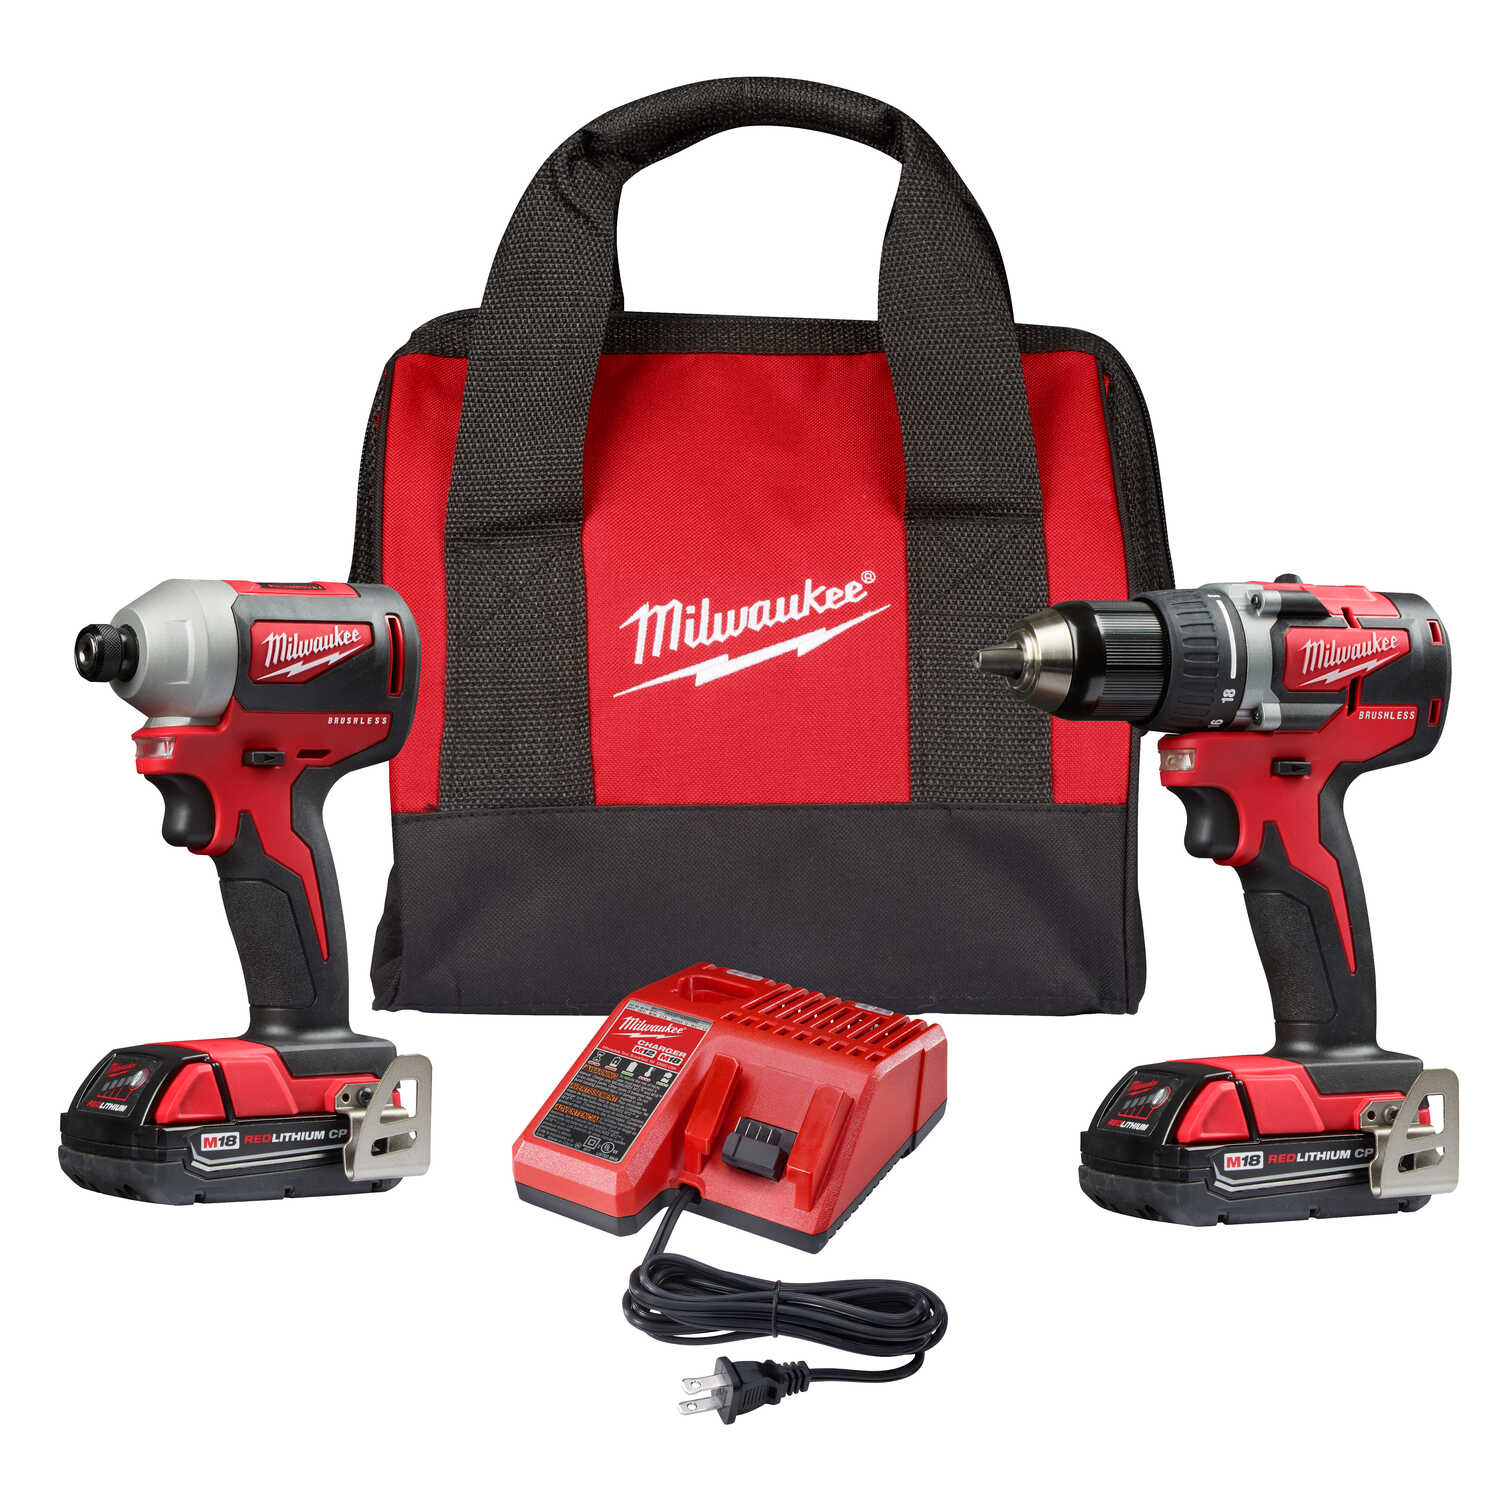 Milwaukee  M18  Cordless  Brushless 2 tool Compact Drill and Impact Driver Kit  18 volt